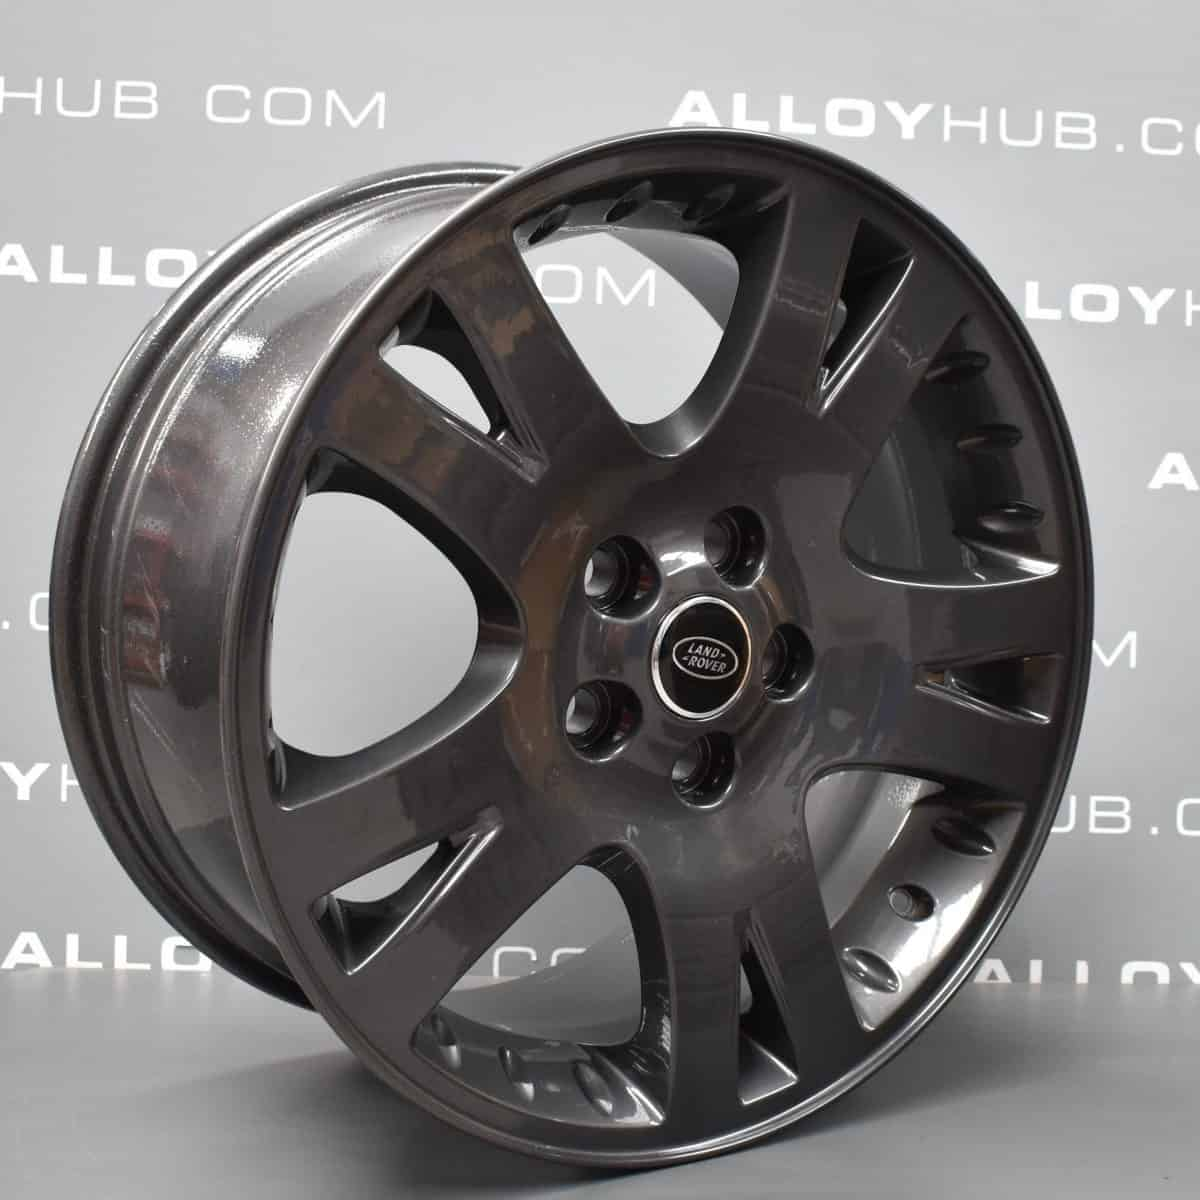 """Genuine Land Rover Range Rover 5 Twin Spoke 19"""" Inch Alloy Wheels with Anthracite Grey Finish RRC502280XXX"""